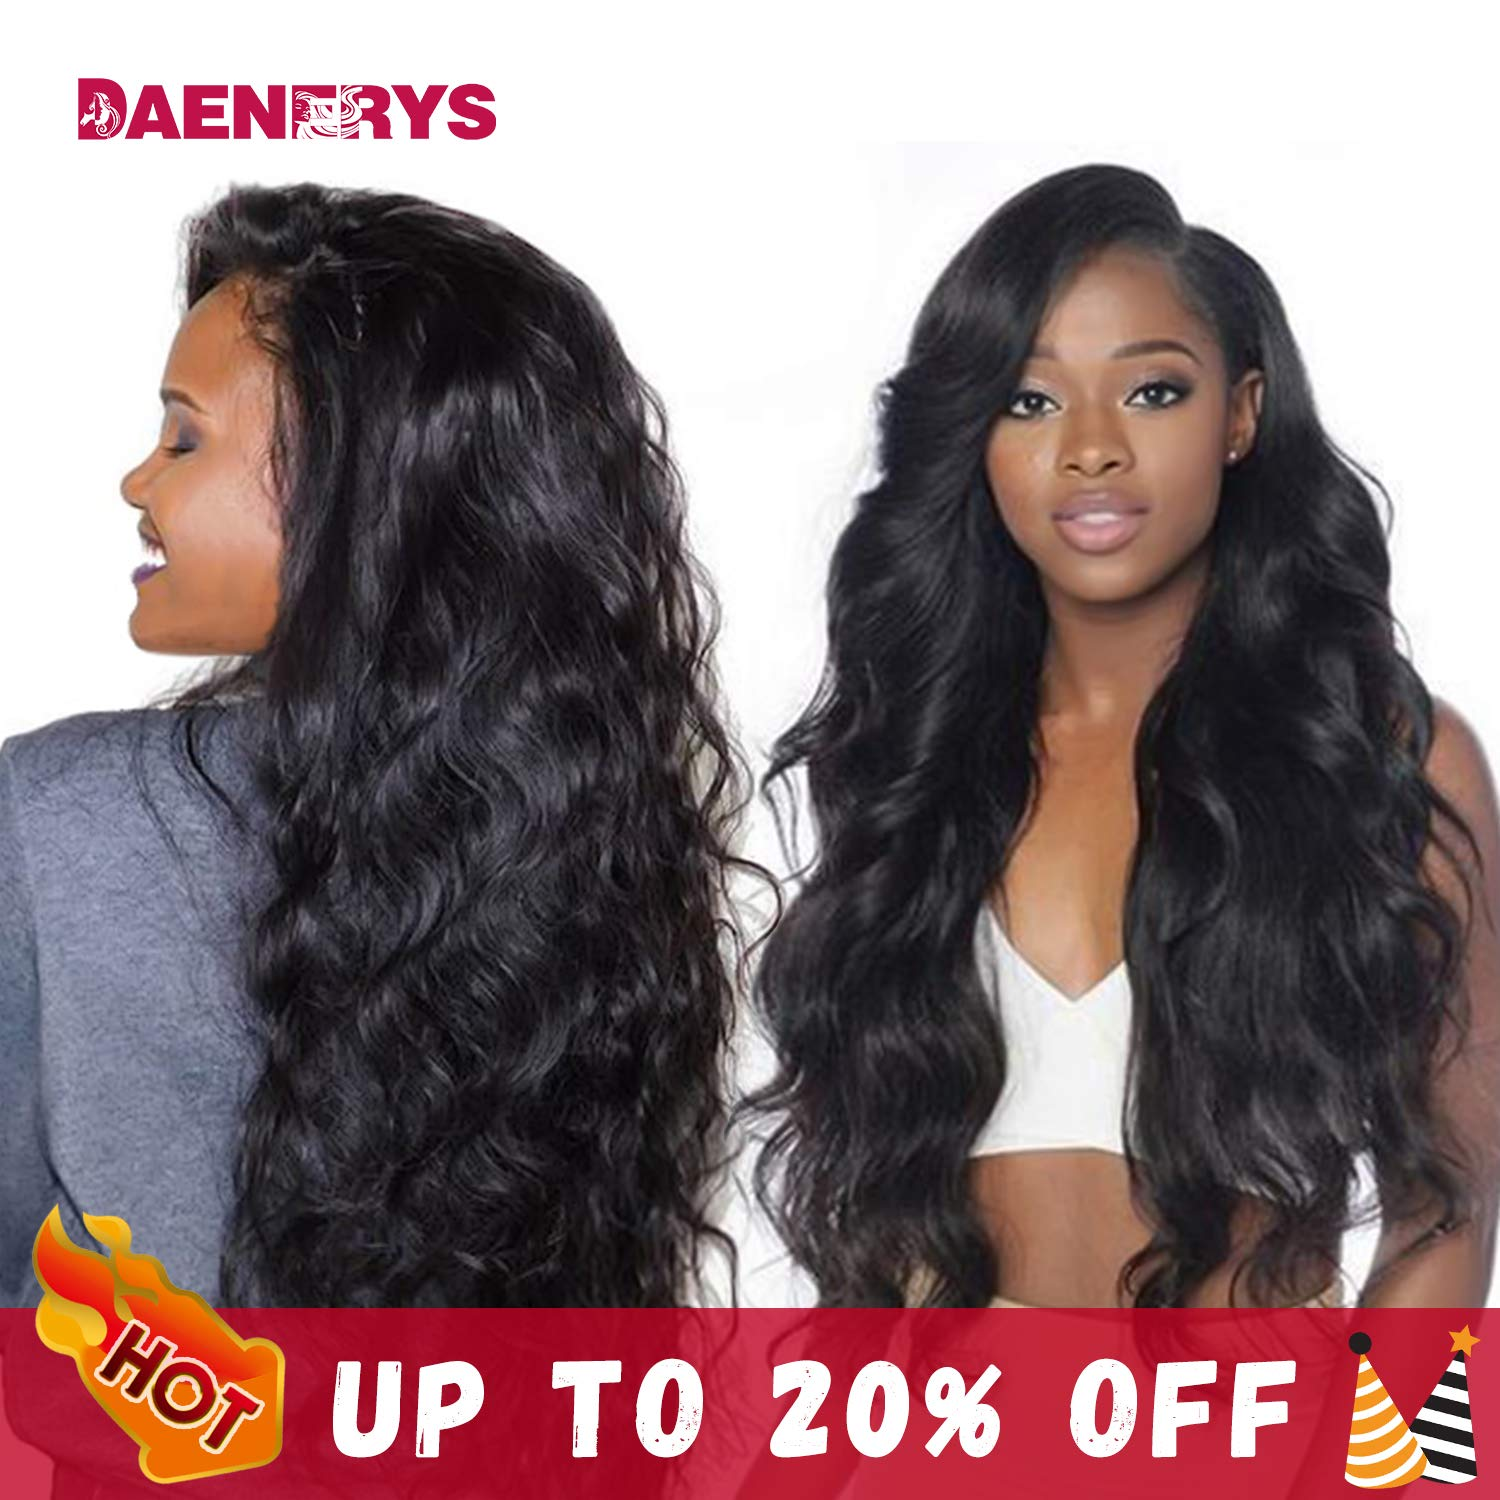 360 Lace Frontal wigs Human Hair Wigs 20inch Pre Plucked Hairline with Baby Hair Body Wave Human Hair Lace Front Wigs Natural Color 150% Density